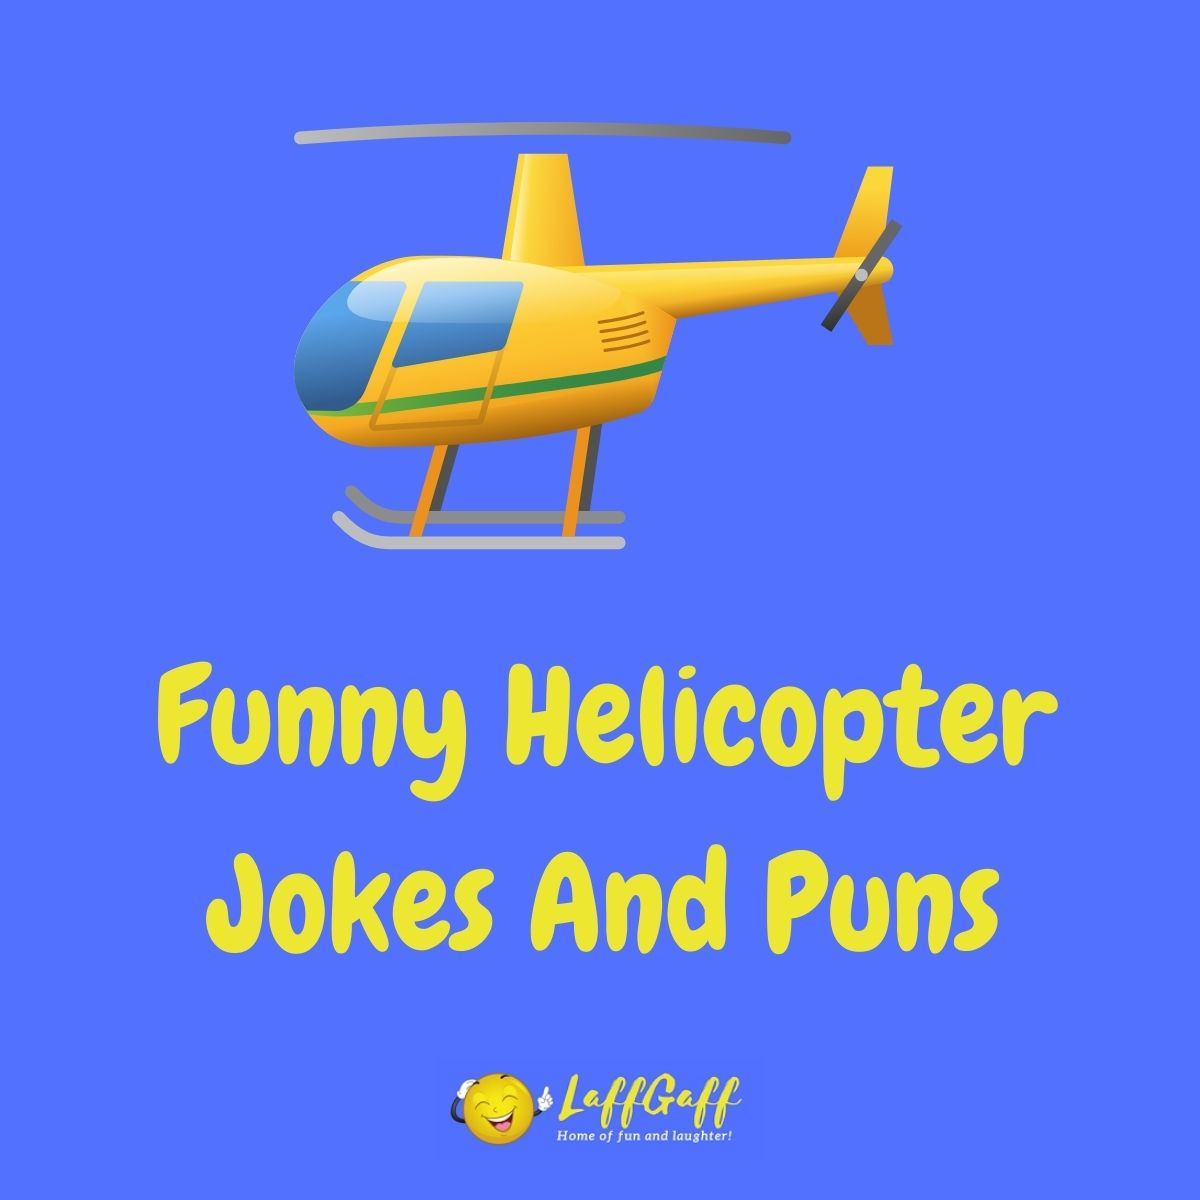 Featured image for a page of funny helicopter jokes and puns.